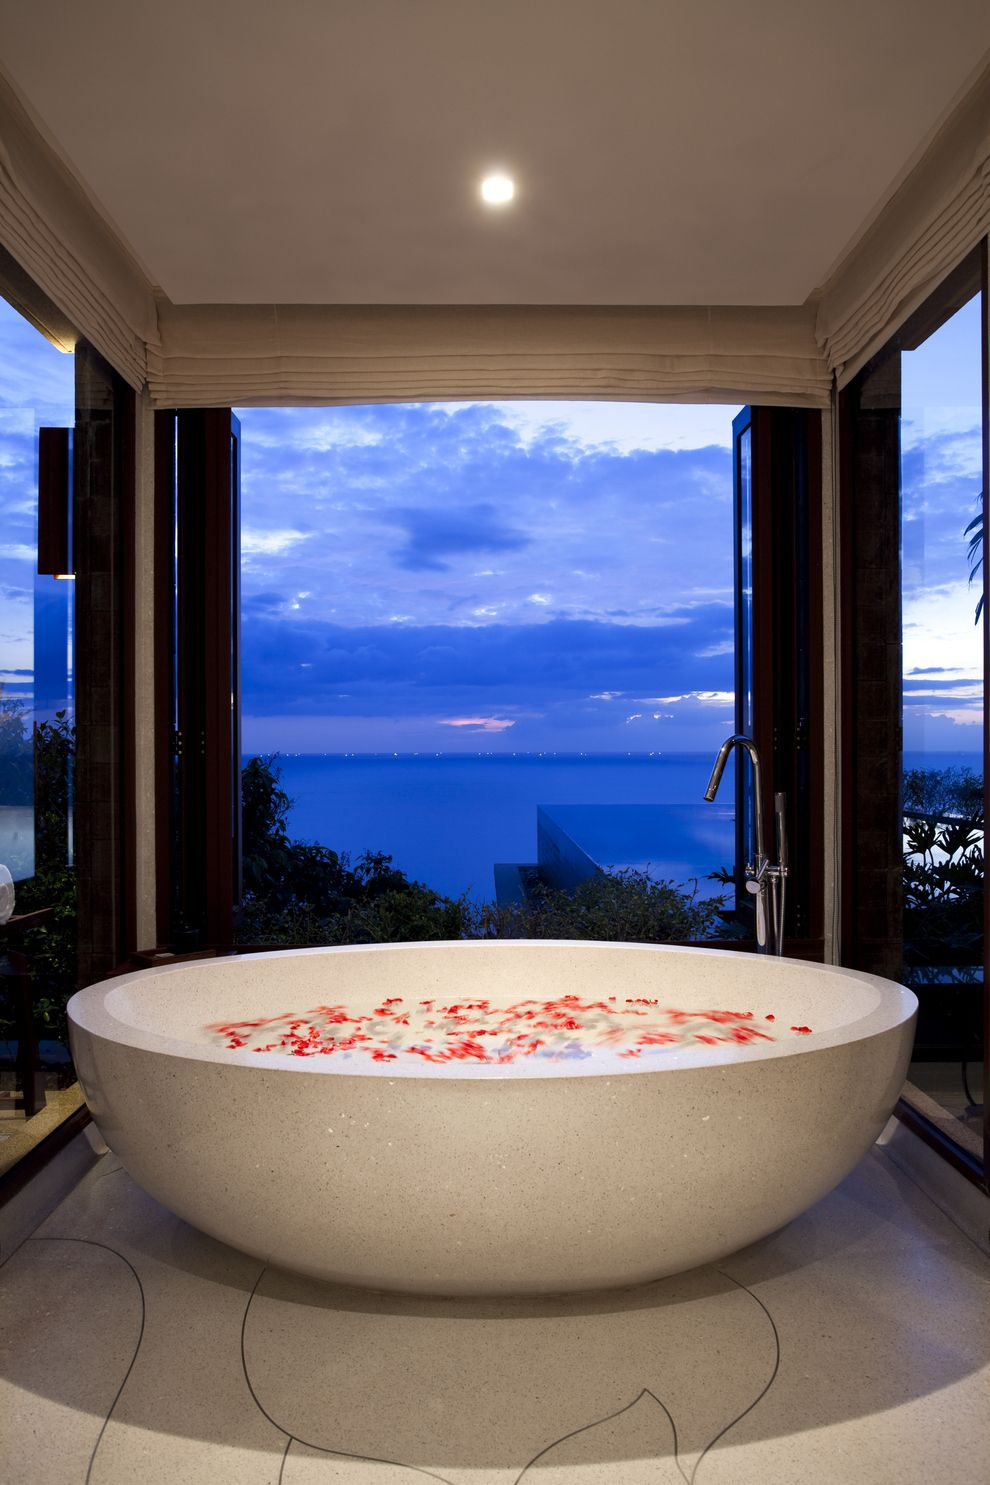 Or A Completely Circular Tub With Views Of Phuket Dream